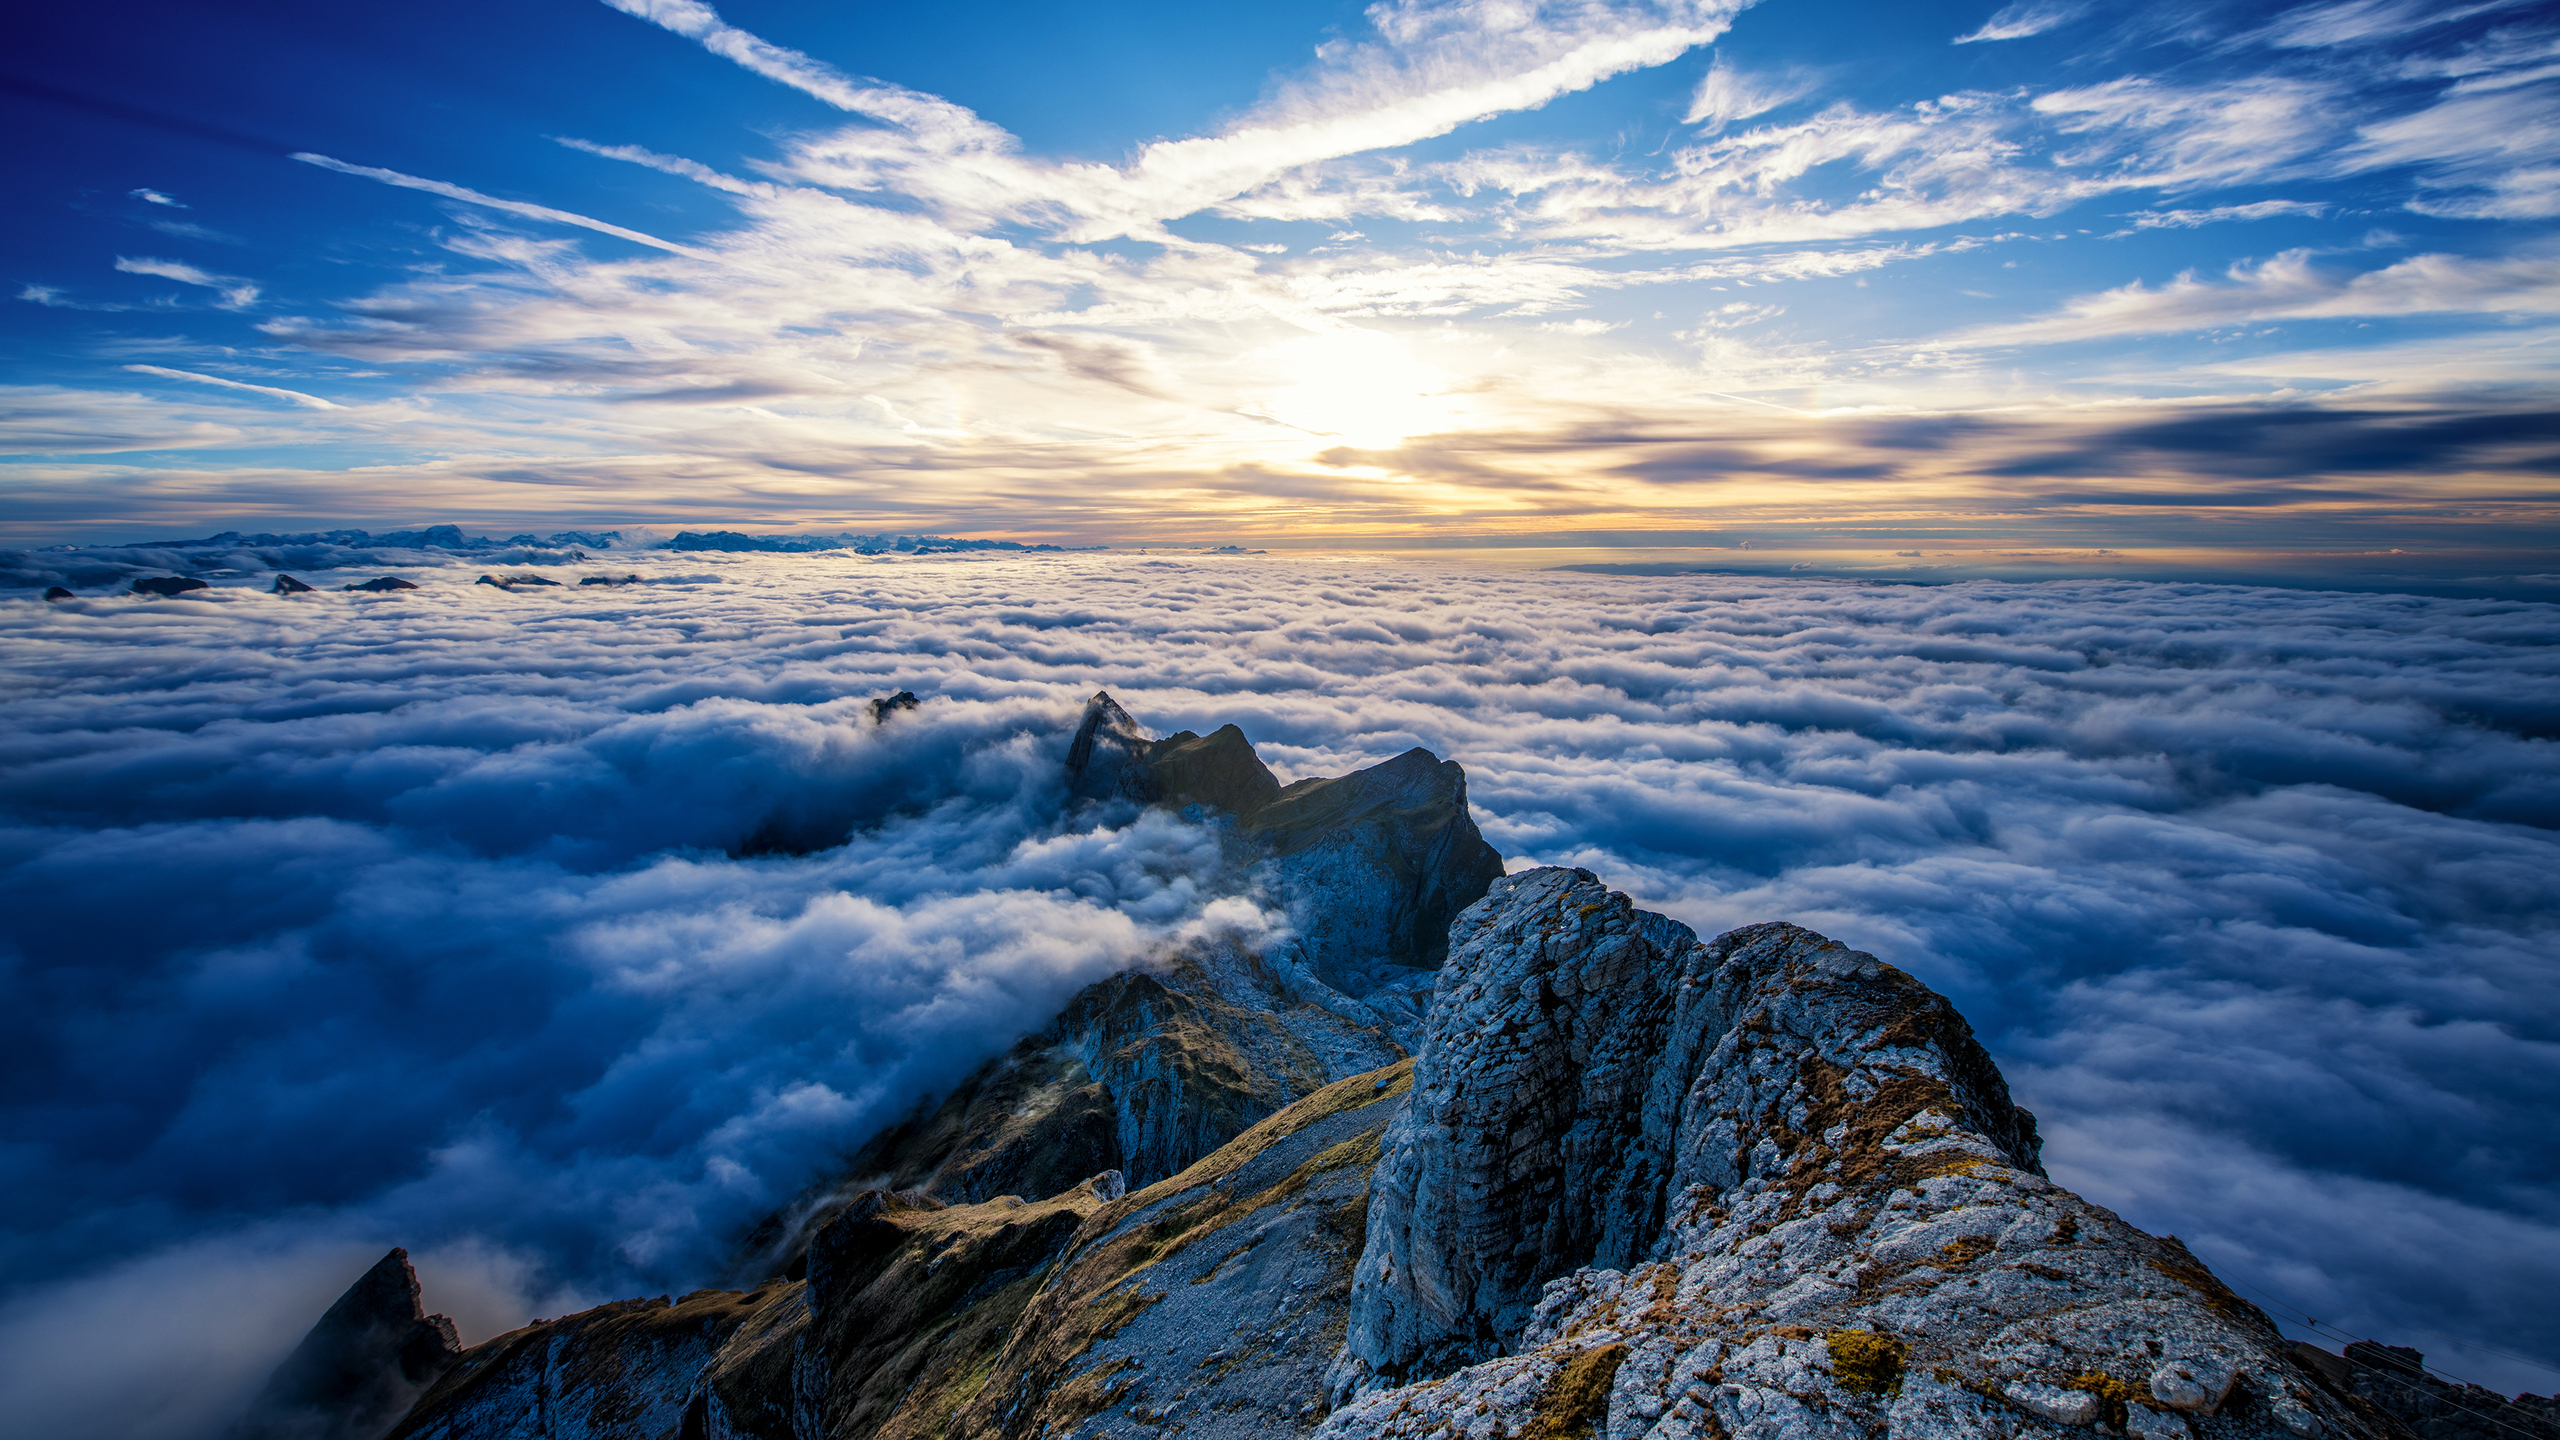 saentis-mountains-clouds-view-from-top-4k-6o.jpg